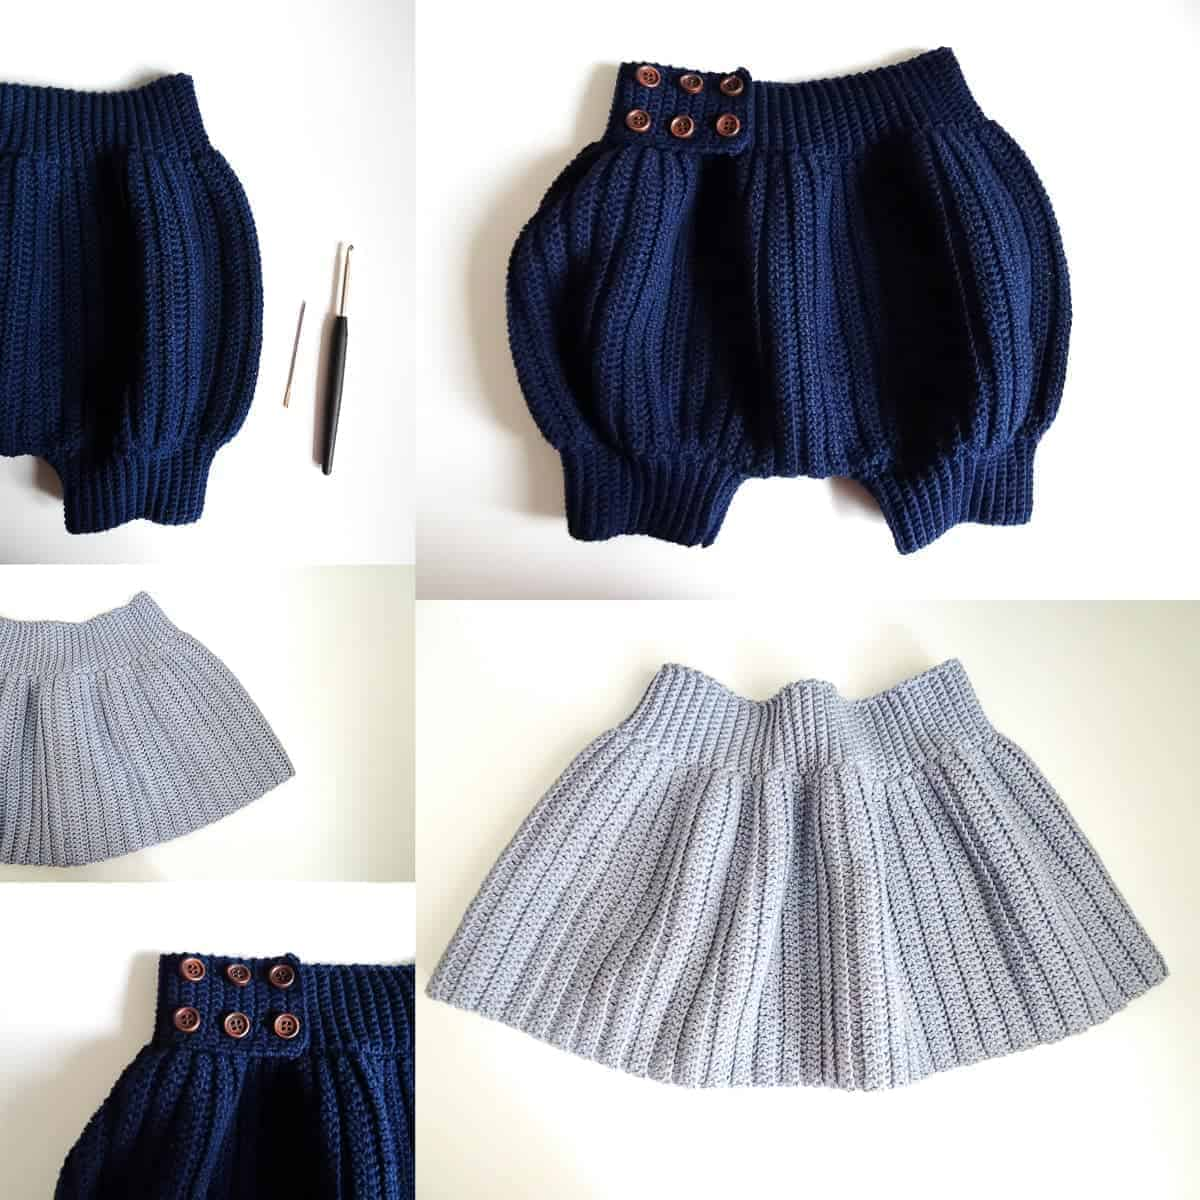 Parva Skirt and Shorts Crochet Pattern Design – Skill Level Easy